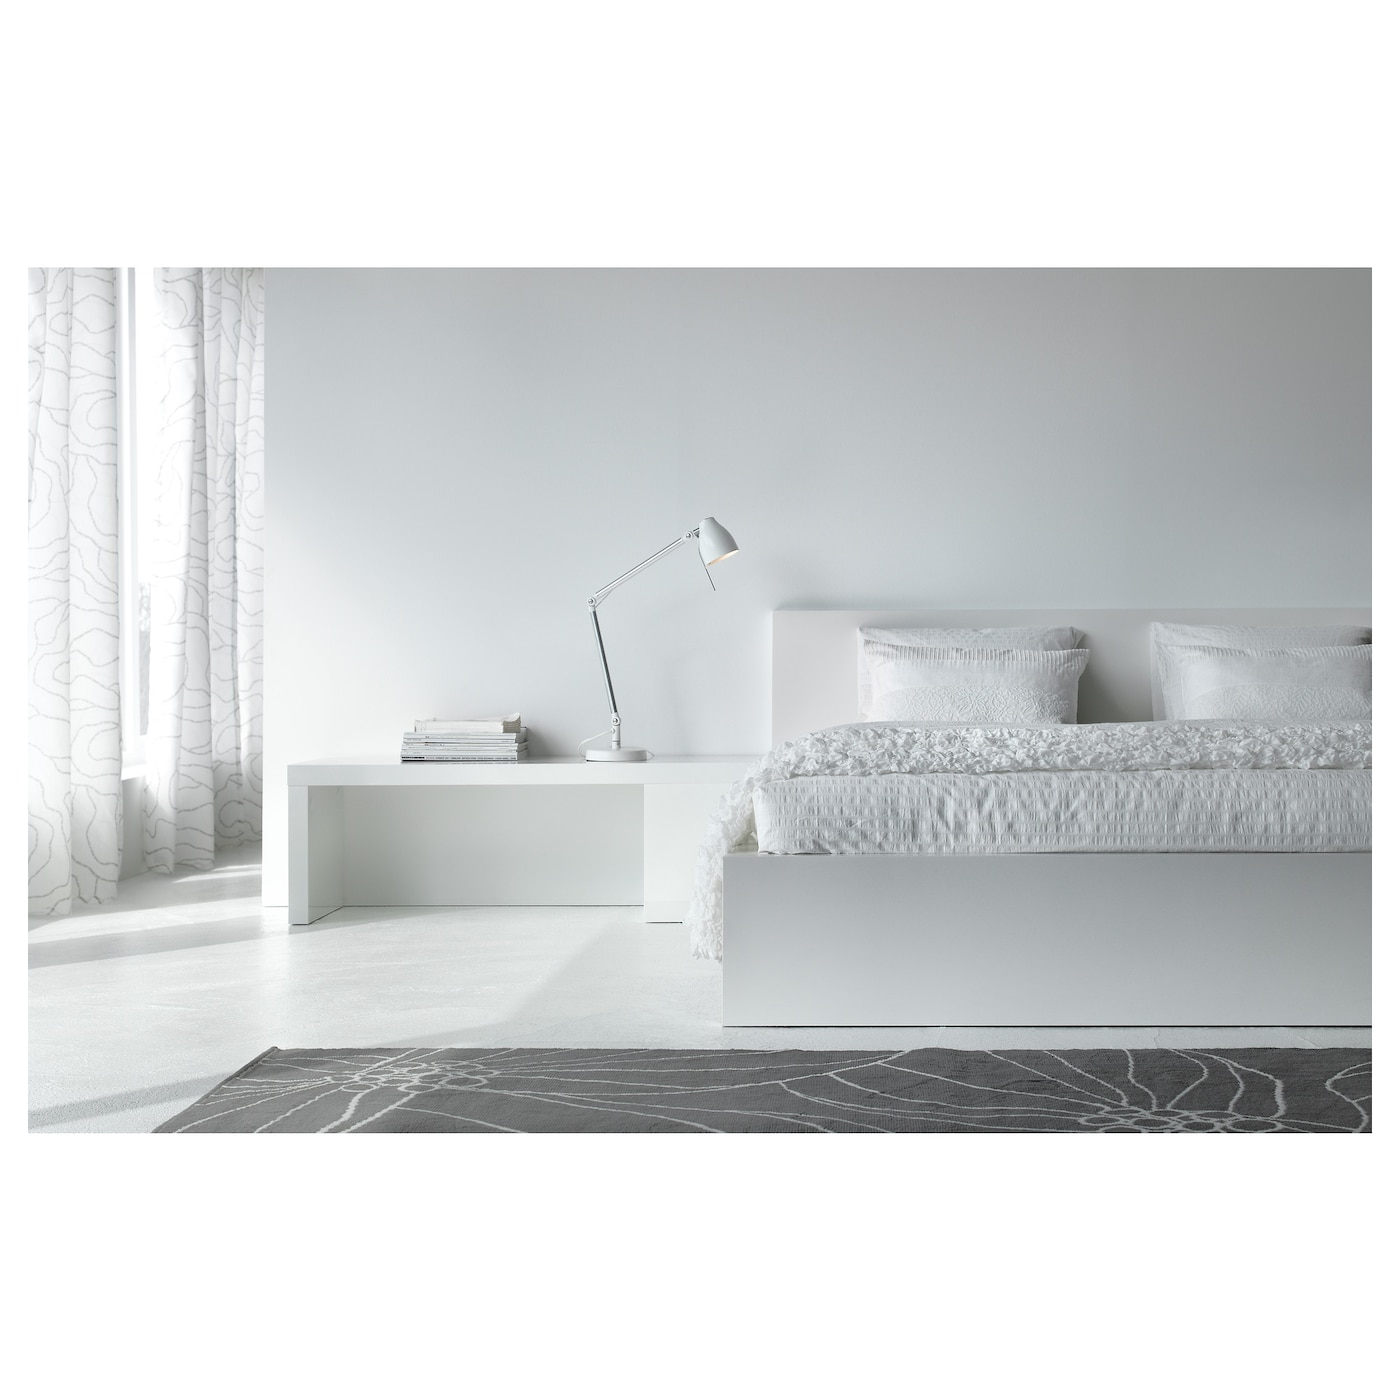 tr l lampe de bureau blanc 64 cm ikea. Black Bedroom Furniture Sets. Home Design Ideas